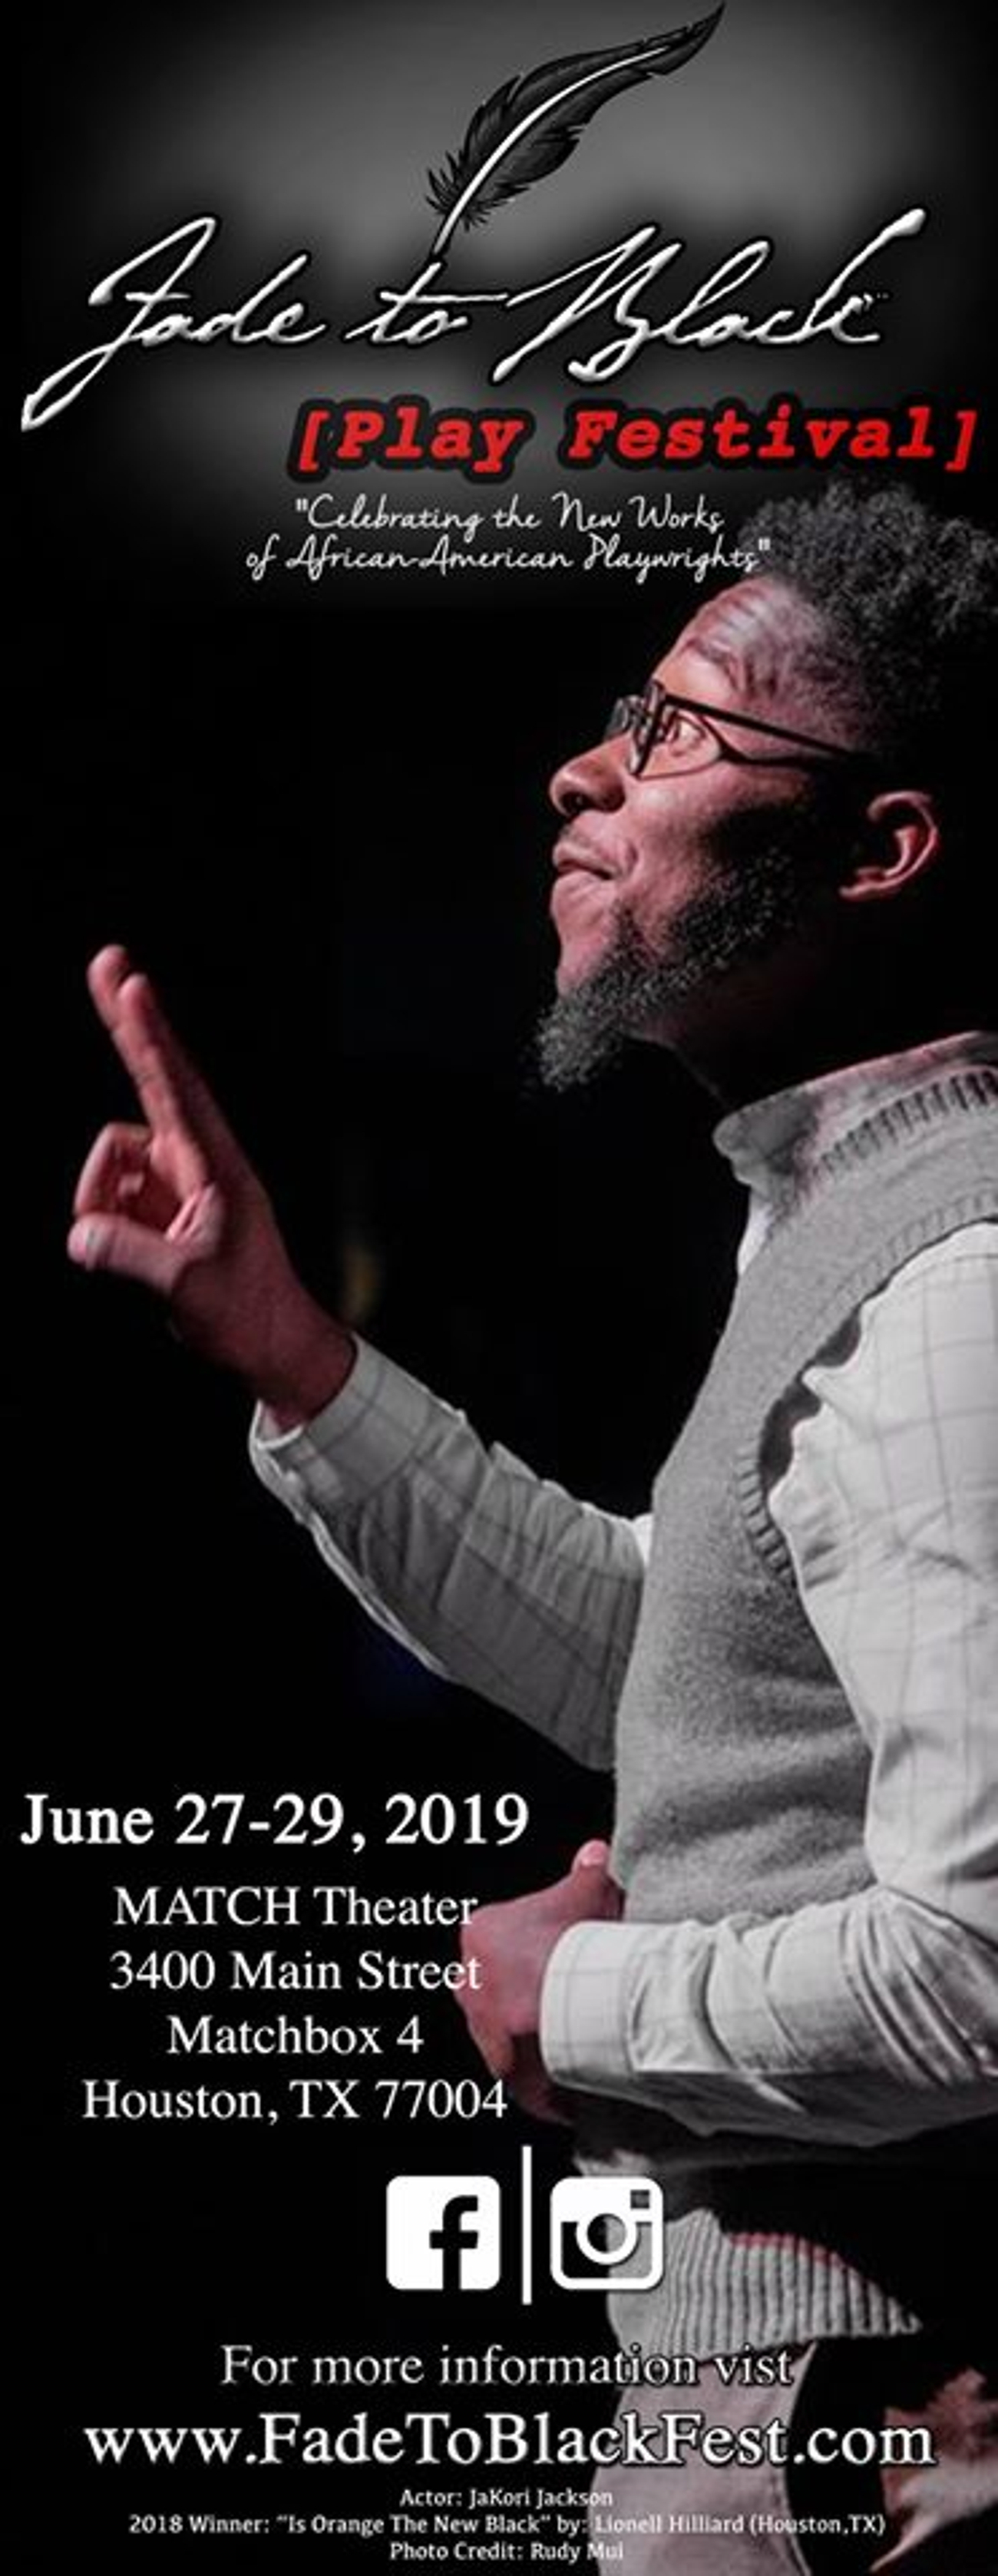 BWW Review: FADE TO BLACK marches on at MATCH